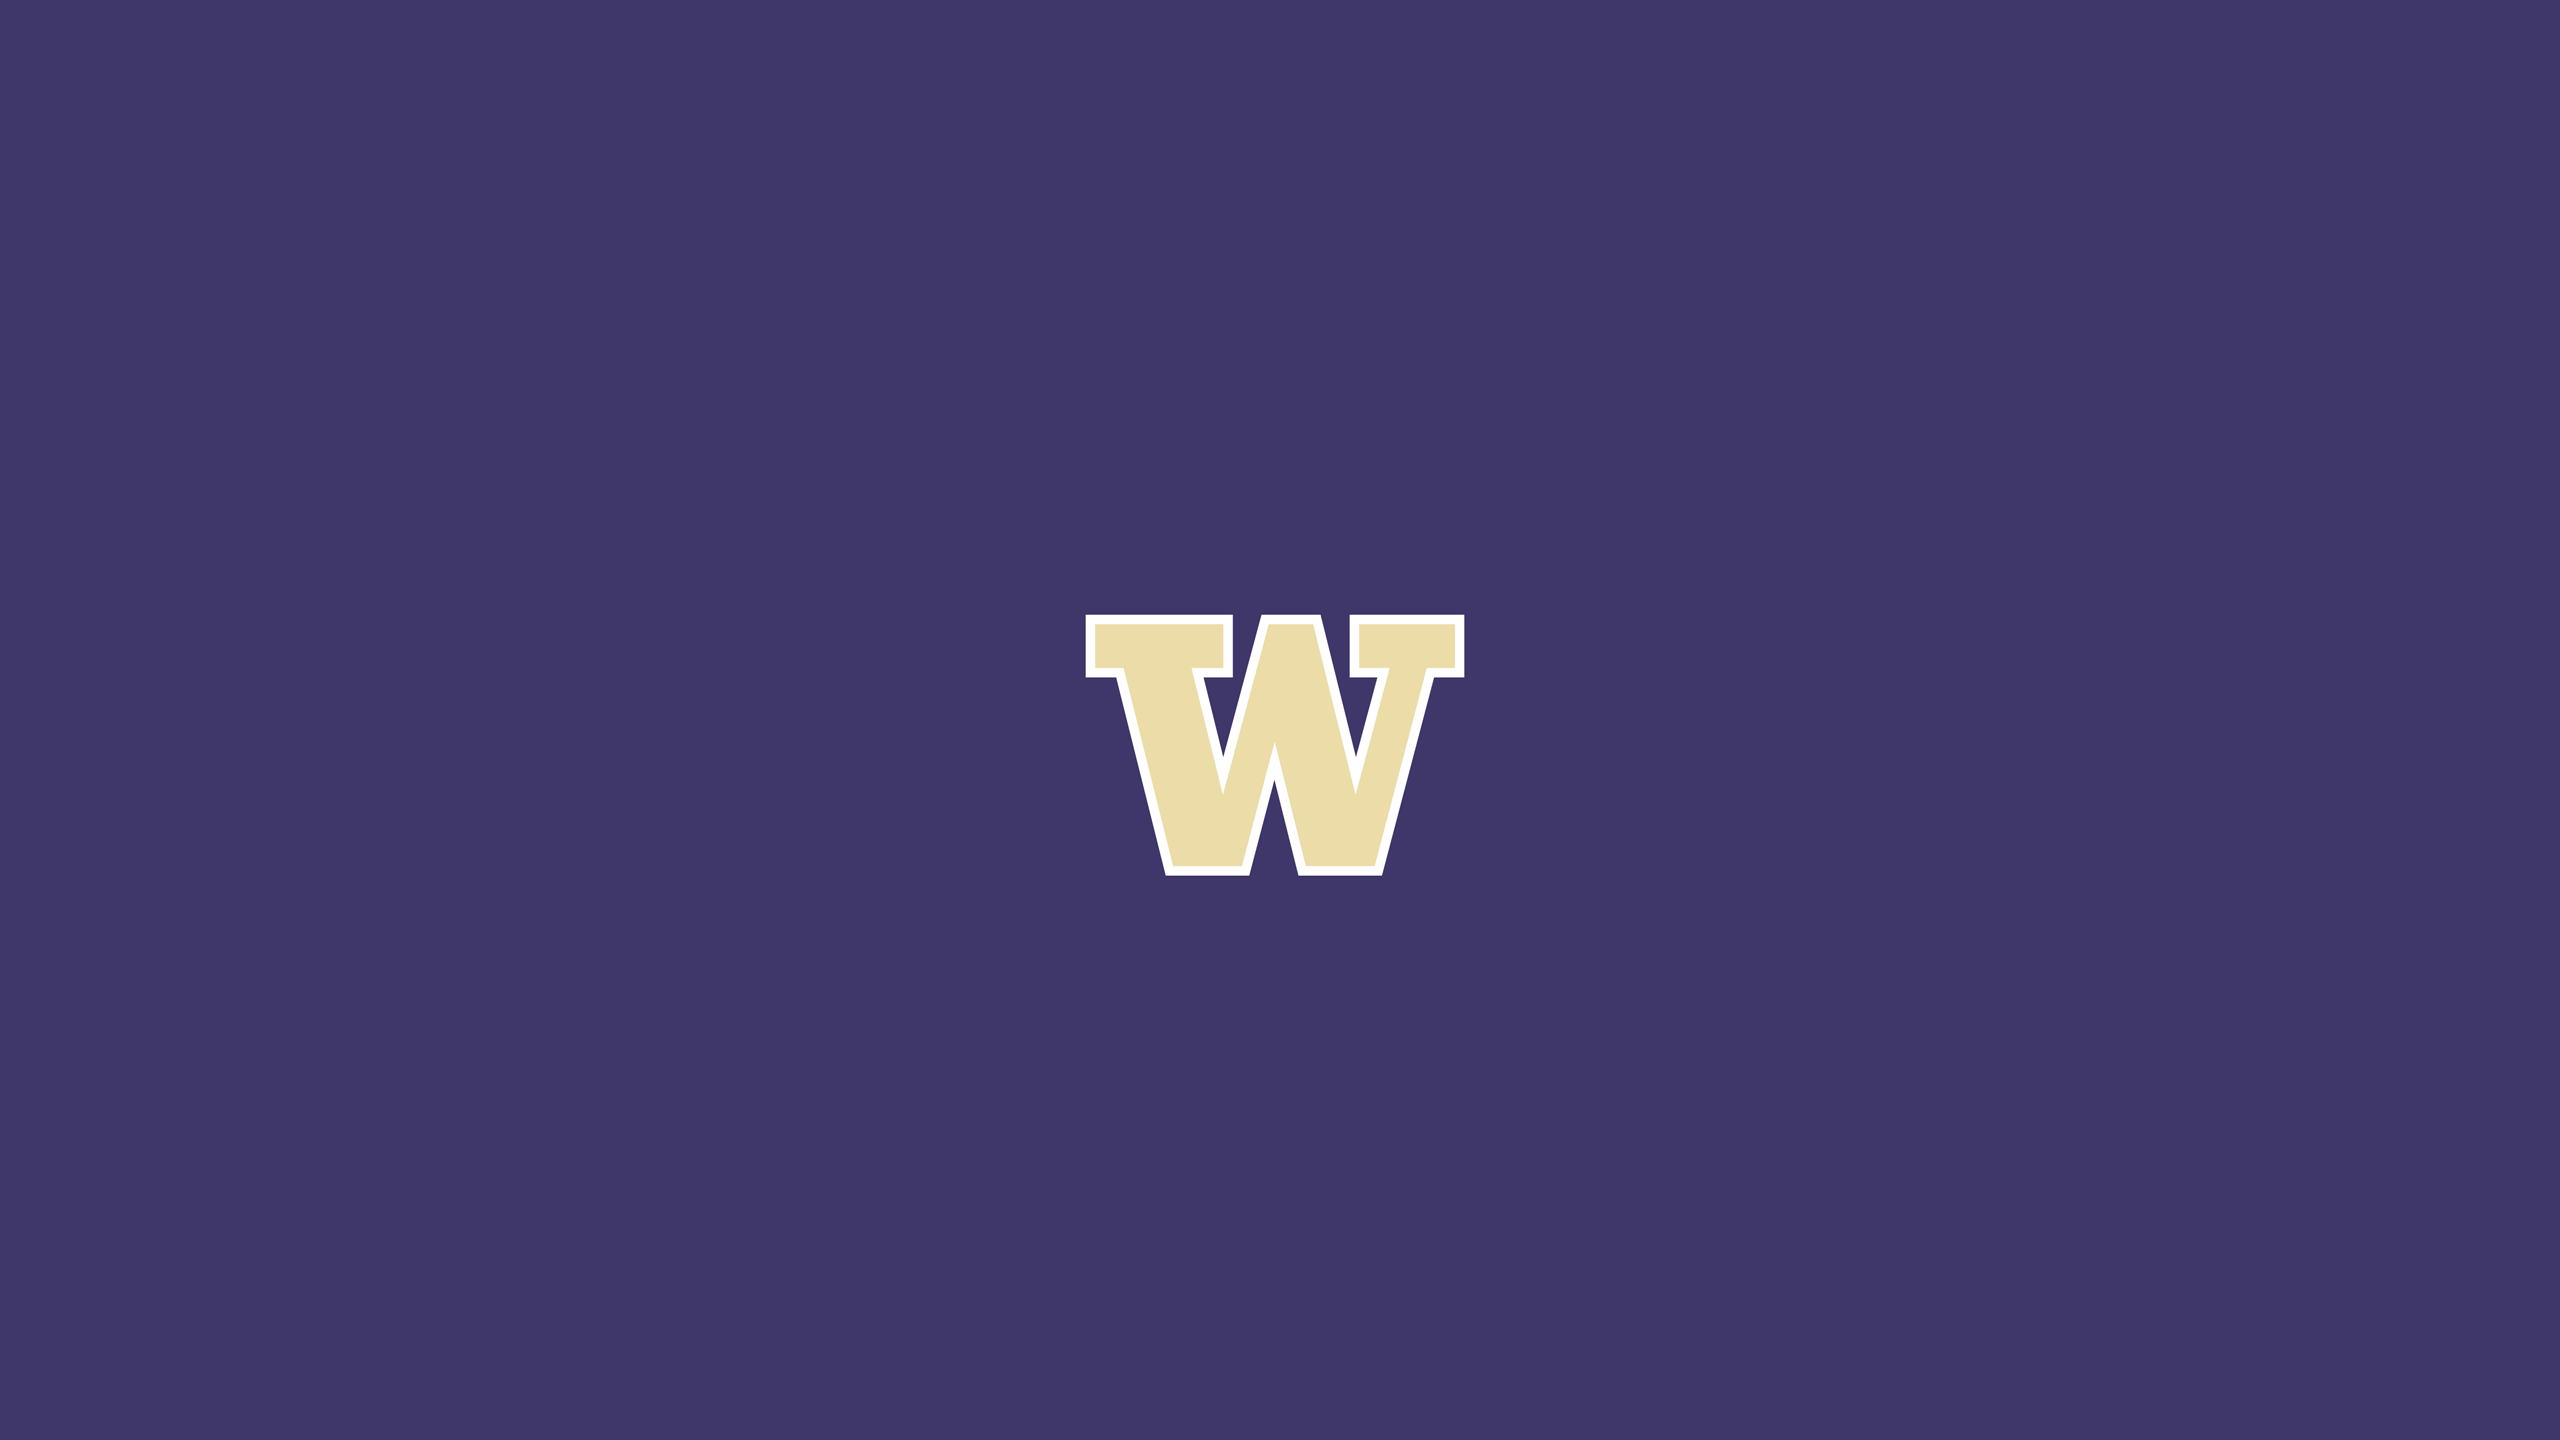 University Of Washington Huskies Wallpaper >> UW Huskies Wallpaper - WallpaperSafari